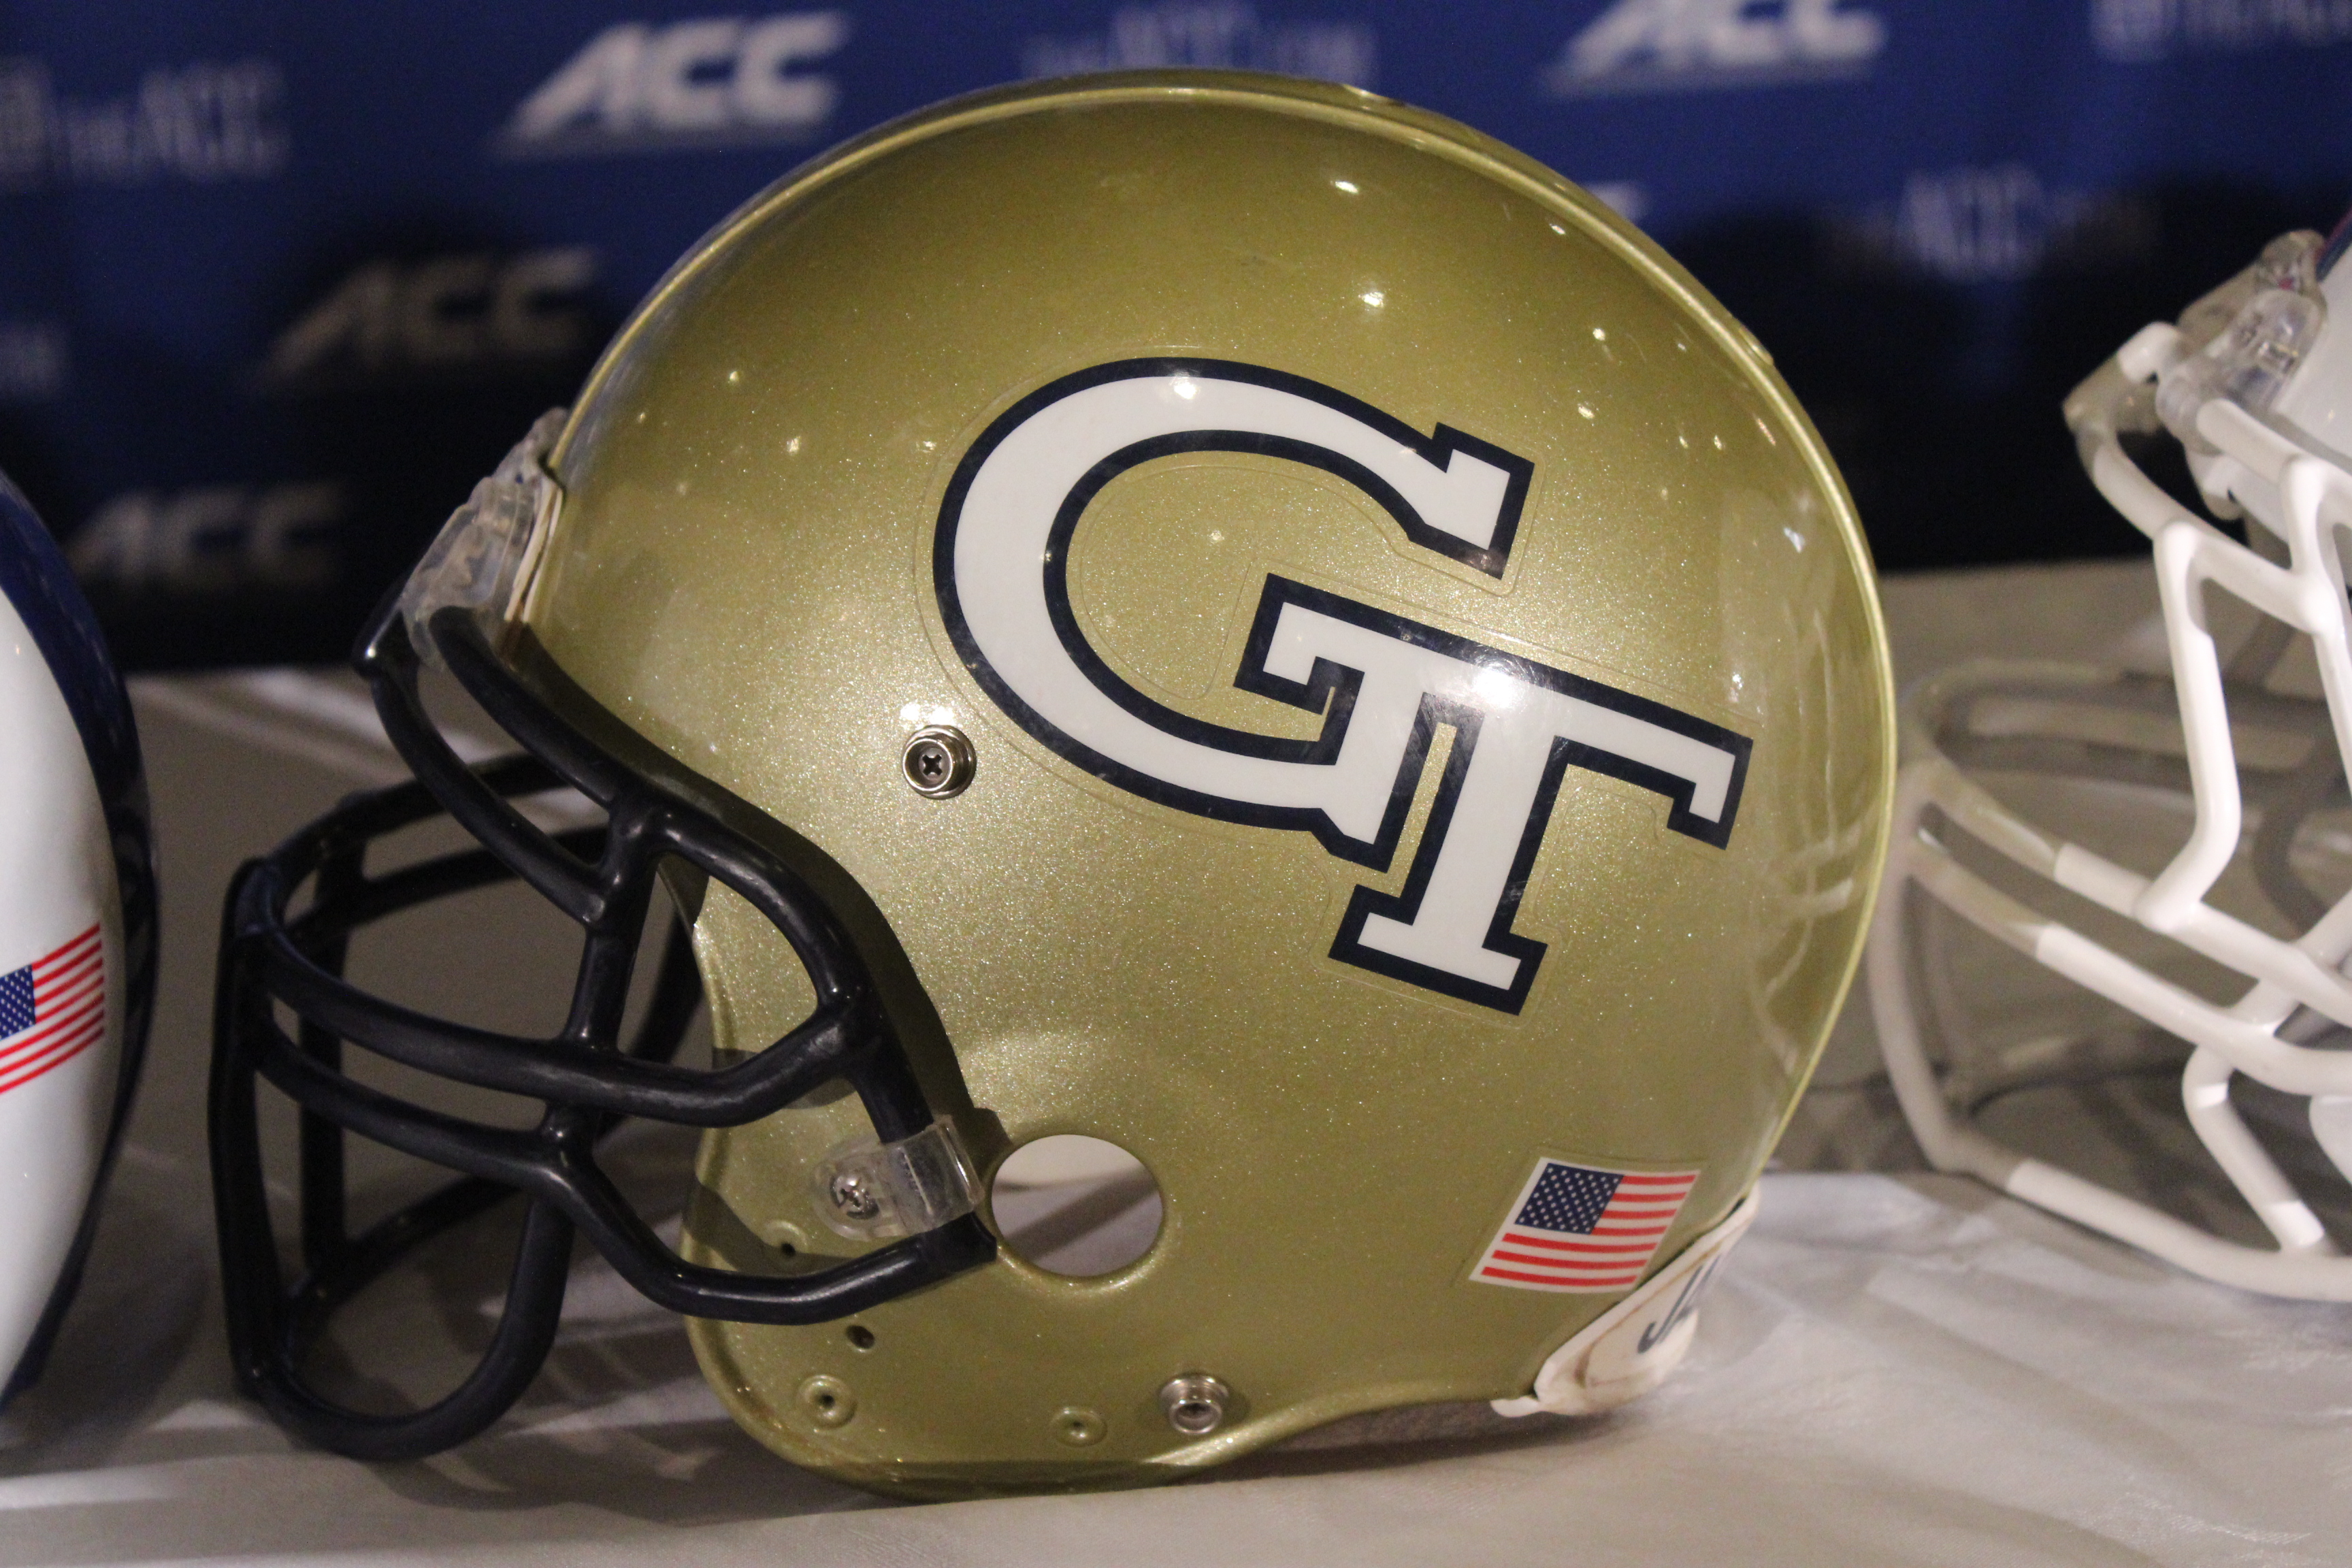 Georgia Tech Helmet 2014 ACC Kickoff Photo By Mark Blankenbaker